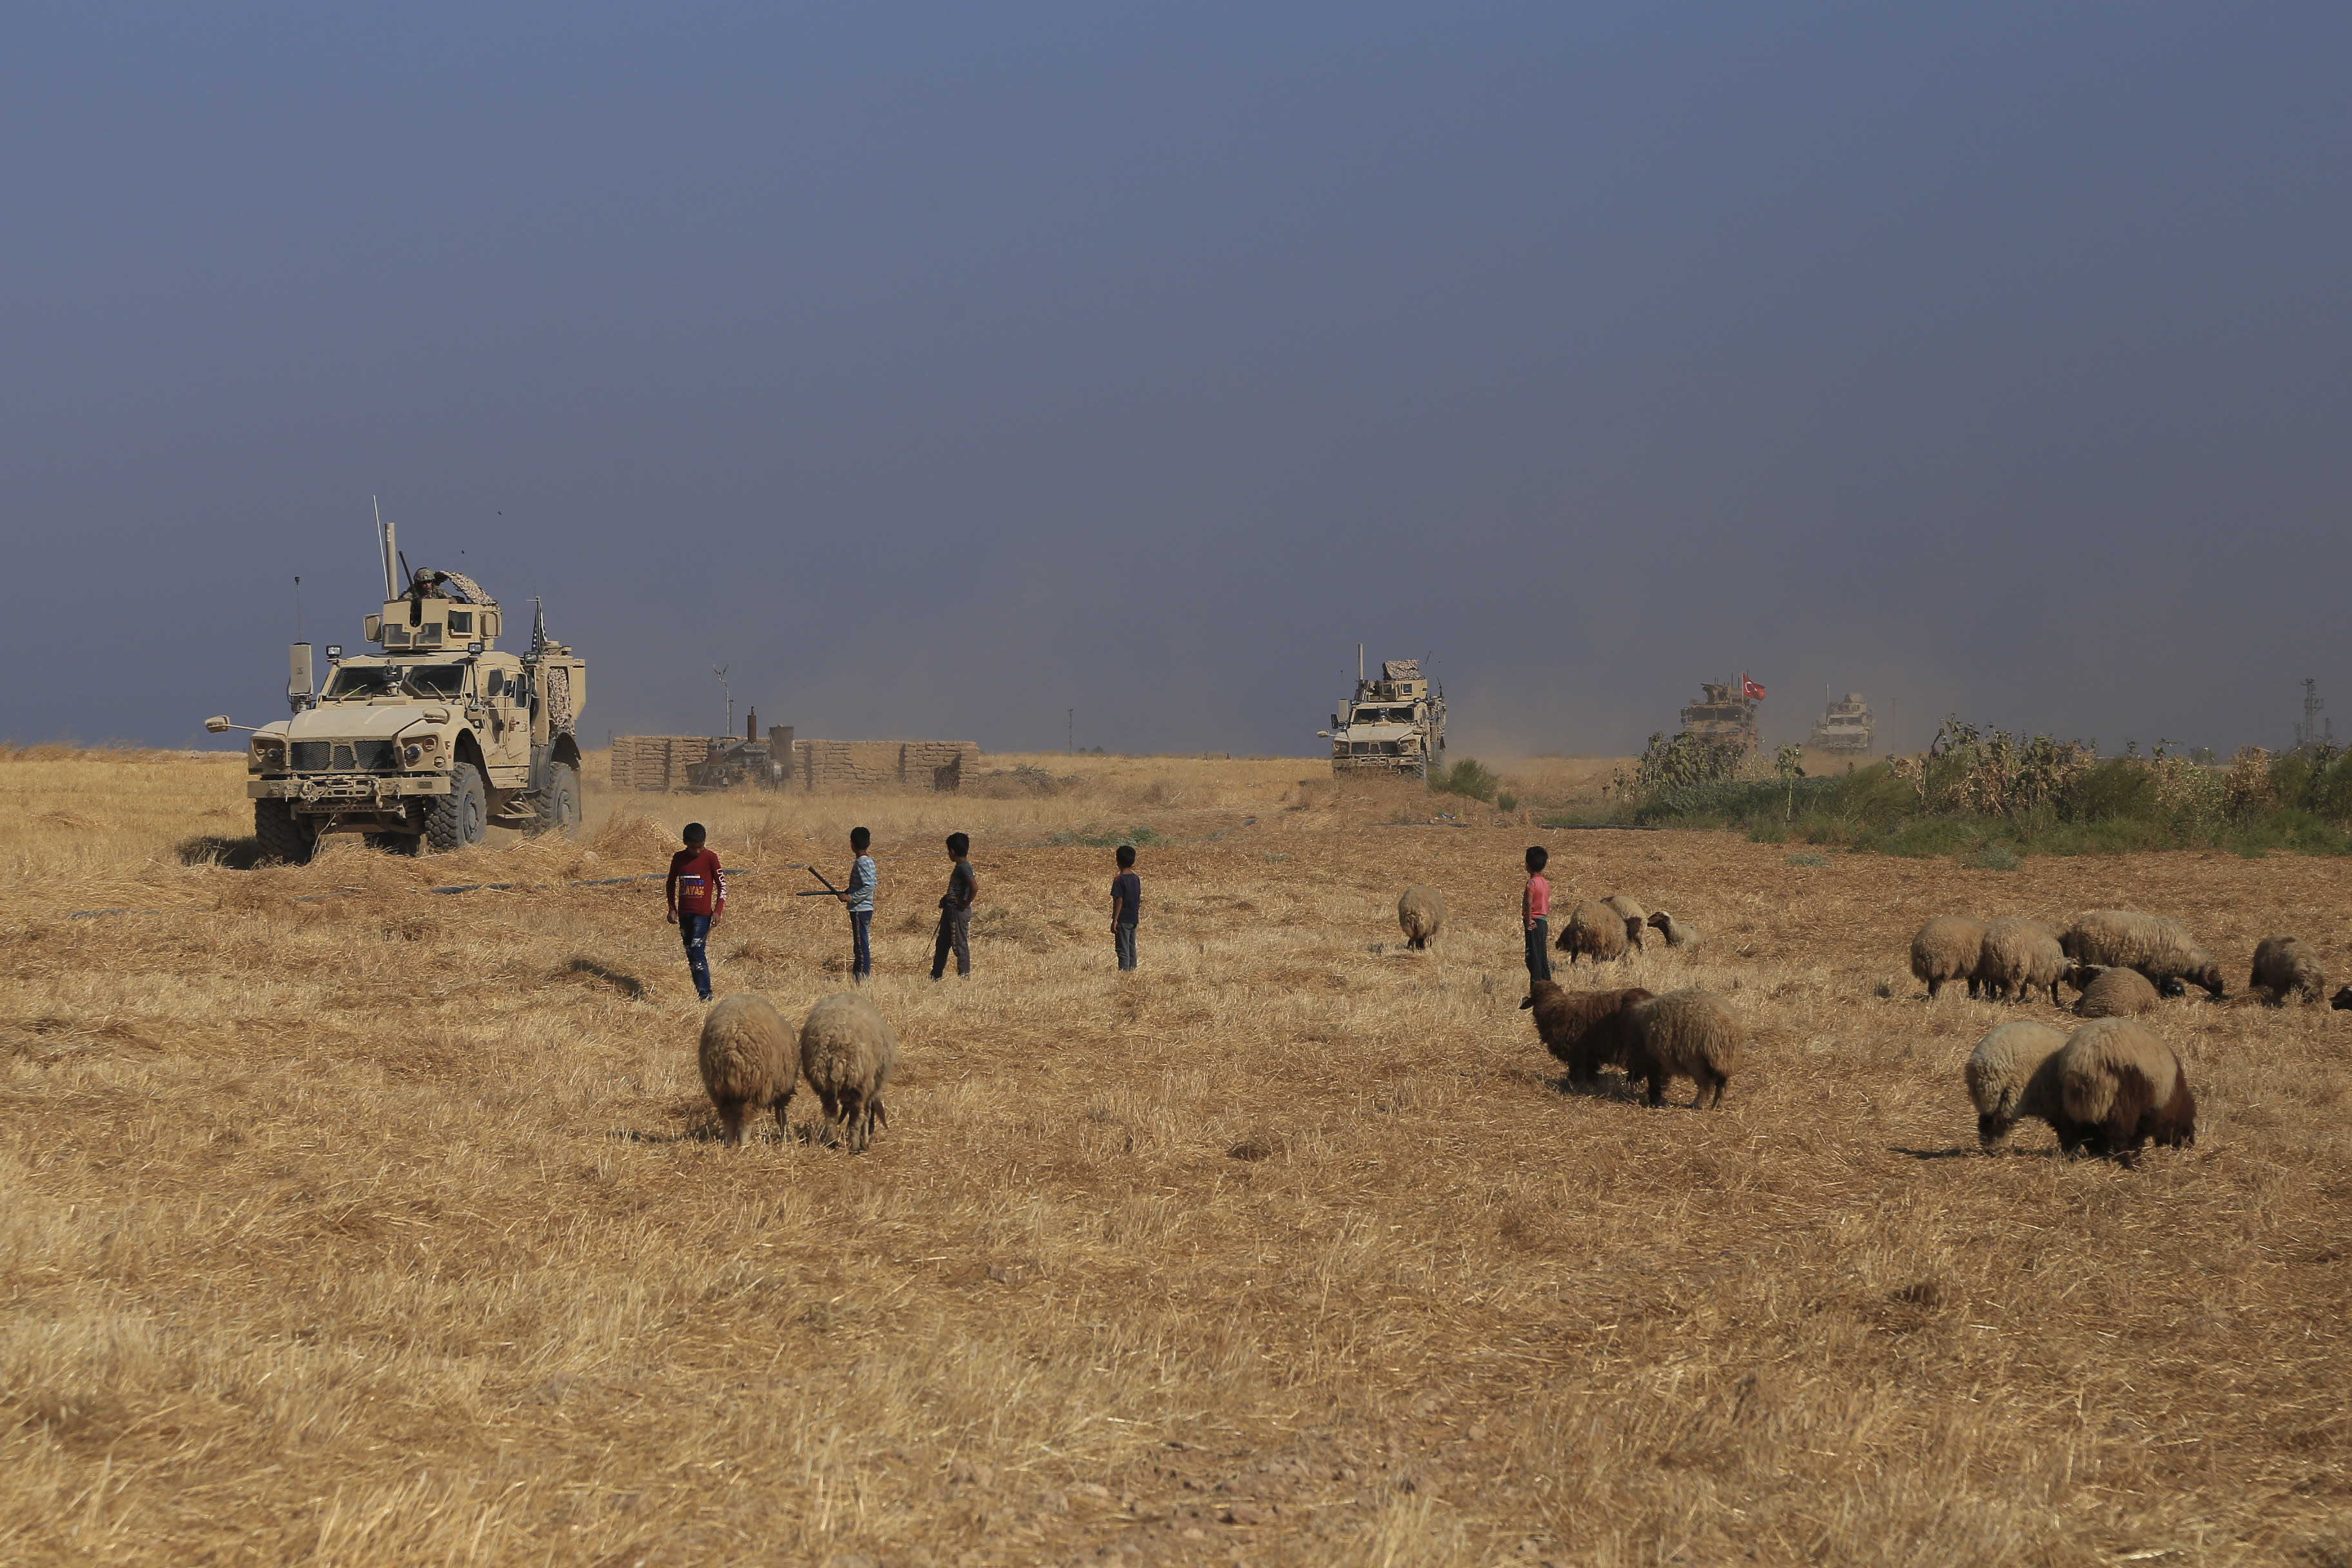 """A Turkish armored vehicle patrols with American forces, as they conduct their second joint ground patrol in the so-called """"safe zone"""" on the Syrian side of the border with Turkey, in Rahaf village, near the town of Tal Abyad, northeastern Syria, Tuesday, Sept. 24, 2019. The patrols are part of a deal reached between Turkey and the United States to ease tensions between the allies over the presence of U.S.-backed Syrian Kurdish fighters in the area. (AP Photo/Baderkhan Ahmad)"""